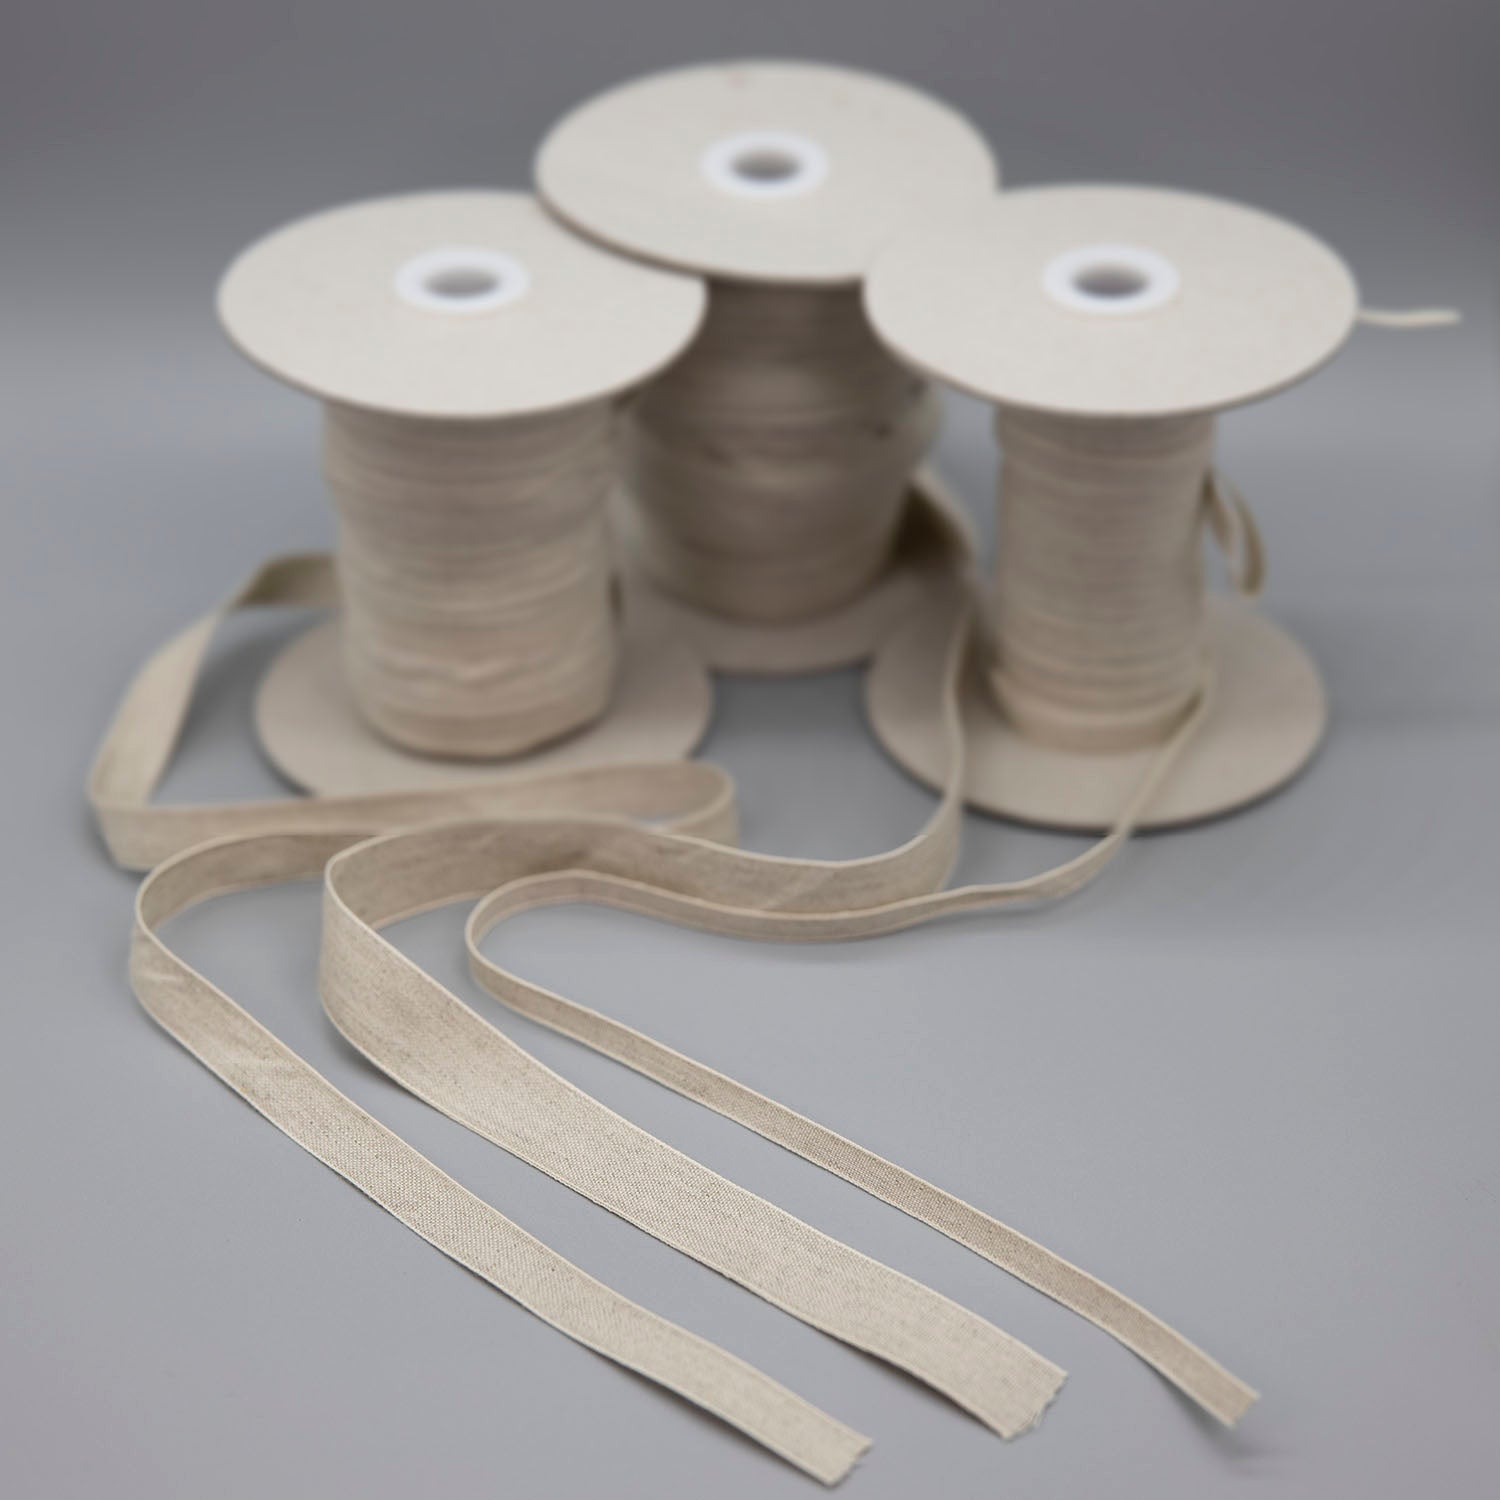 Dutch Linen Tape - Natural - Sold by the yard - $1.00 yd. - $1.90 yd.